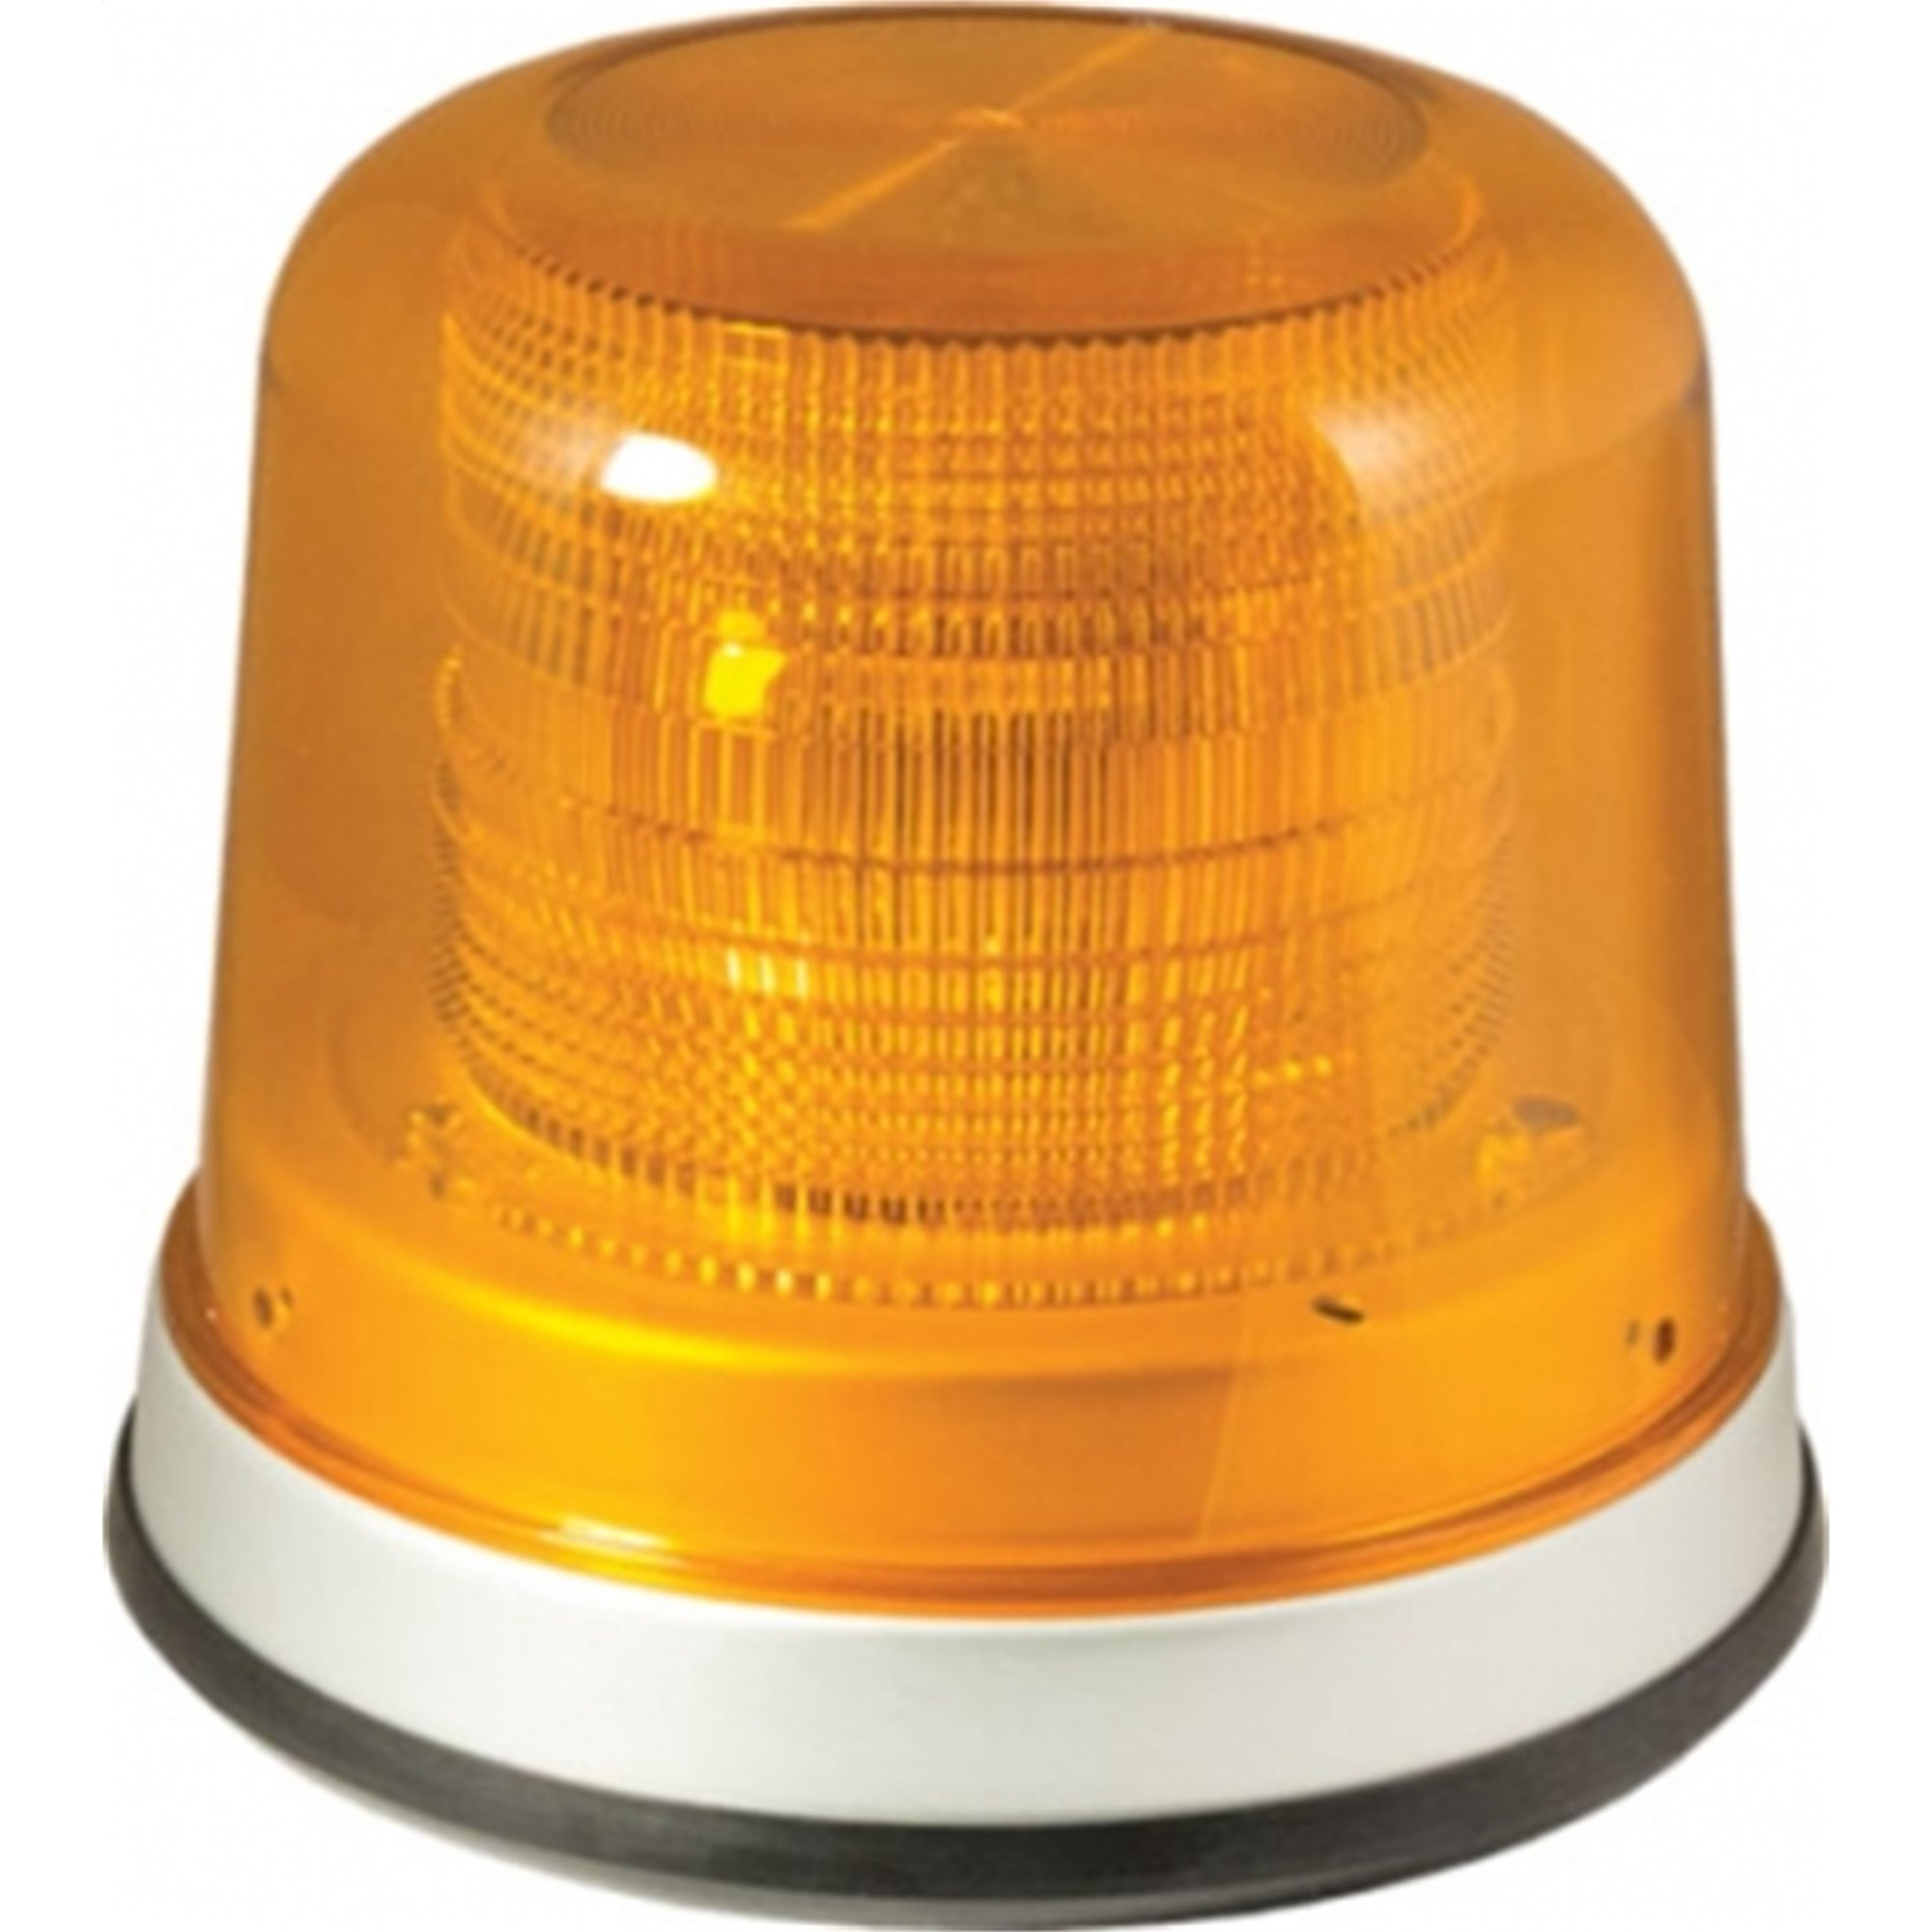 Sws Warning Lights Inc 23805 Intelligent Series Led Beacon